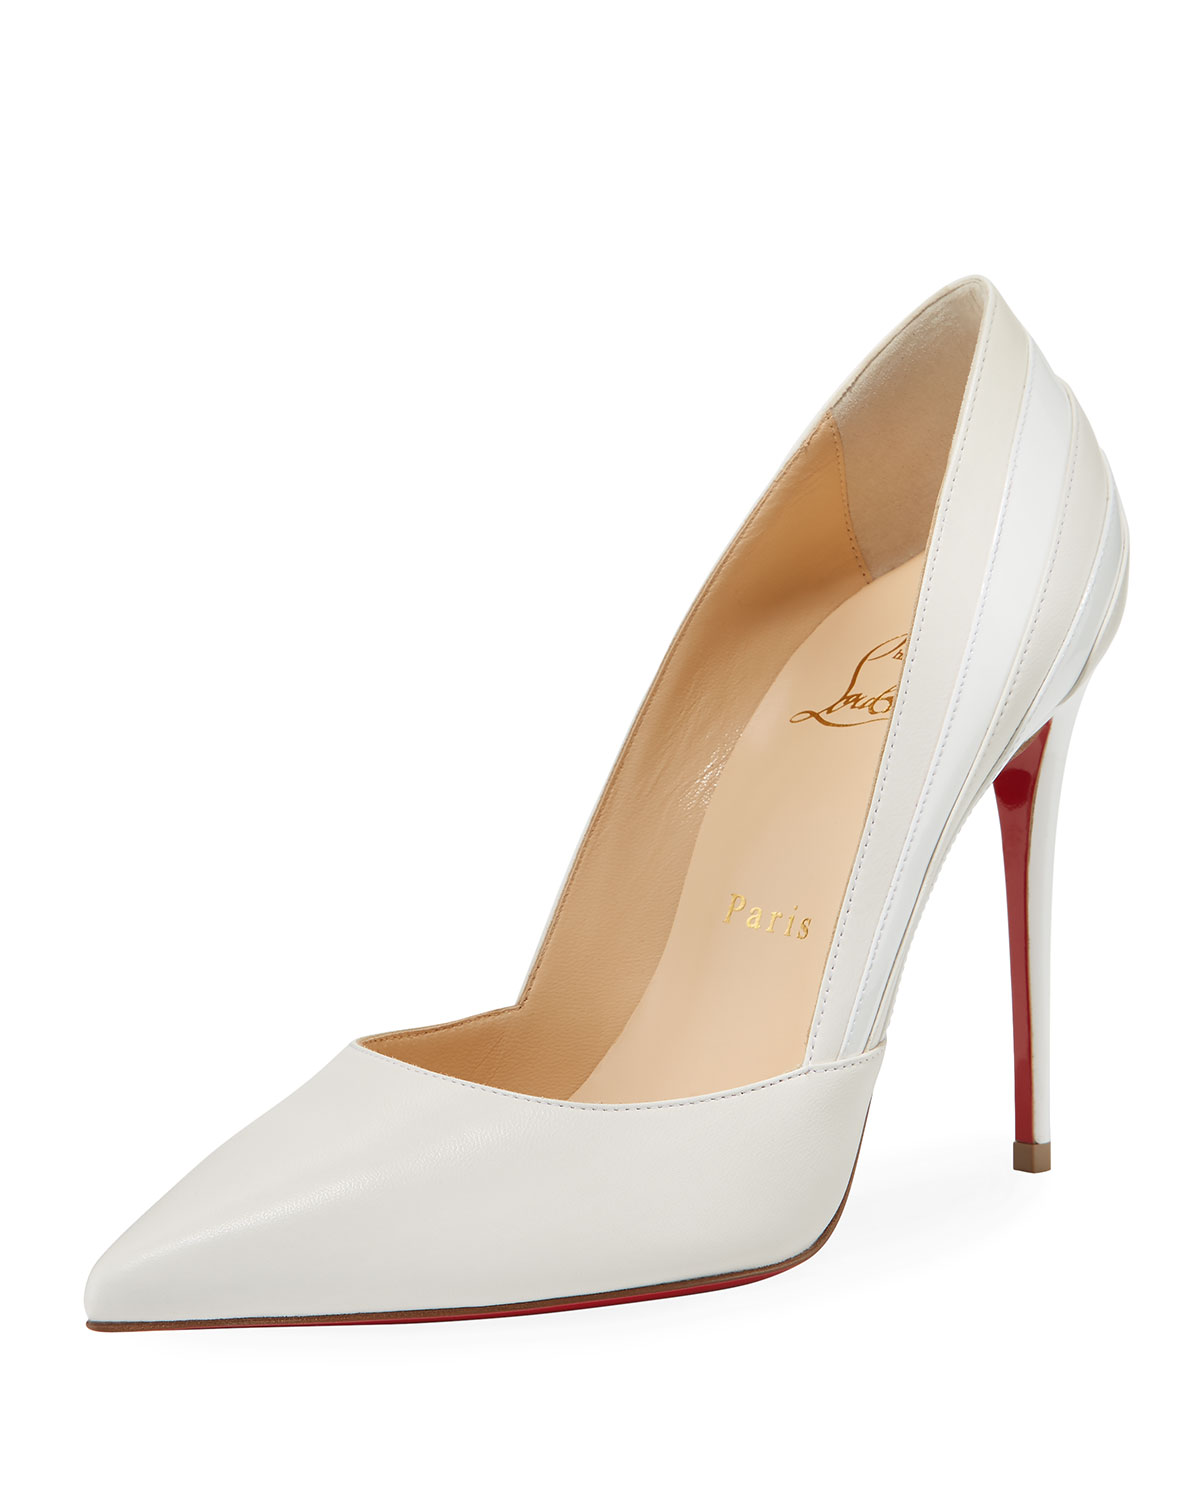 0068a7c99cfc Christian Louboutin Super Point-Toe Red Sole Pumps